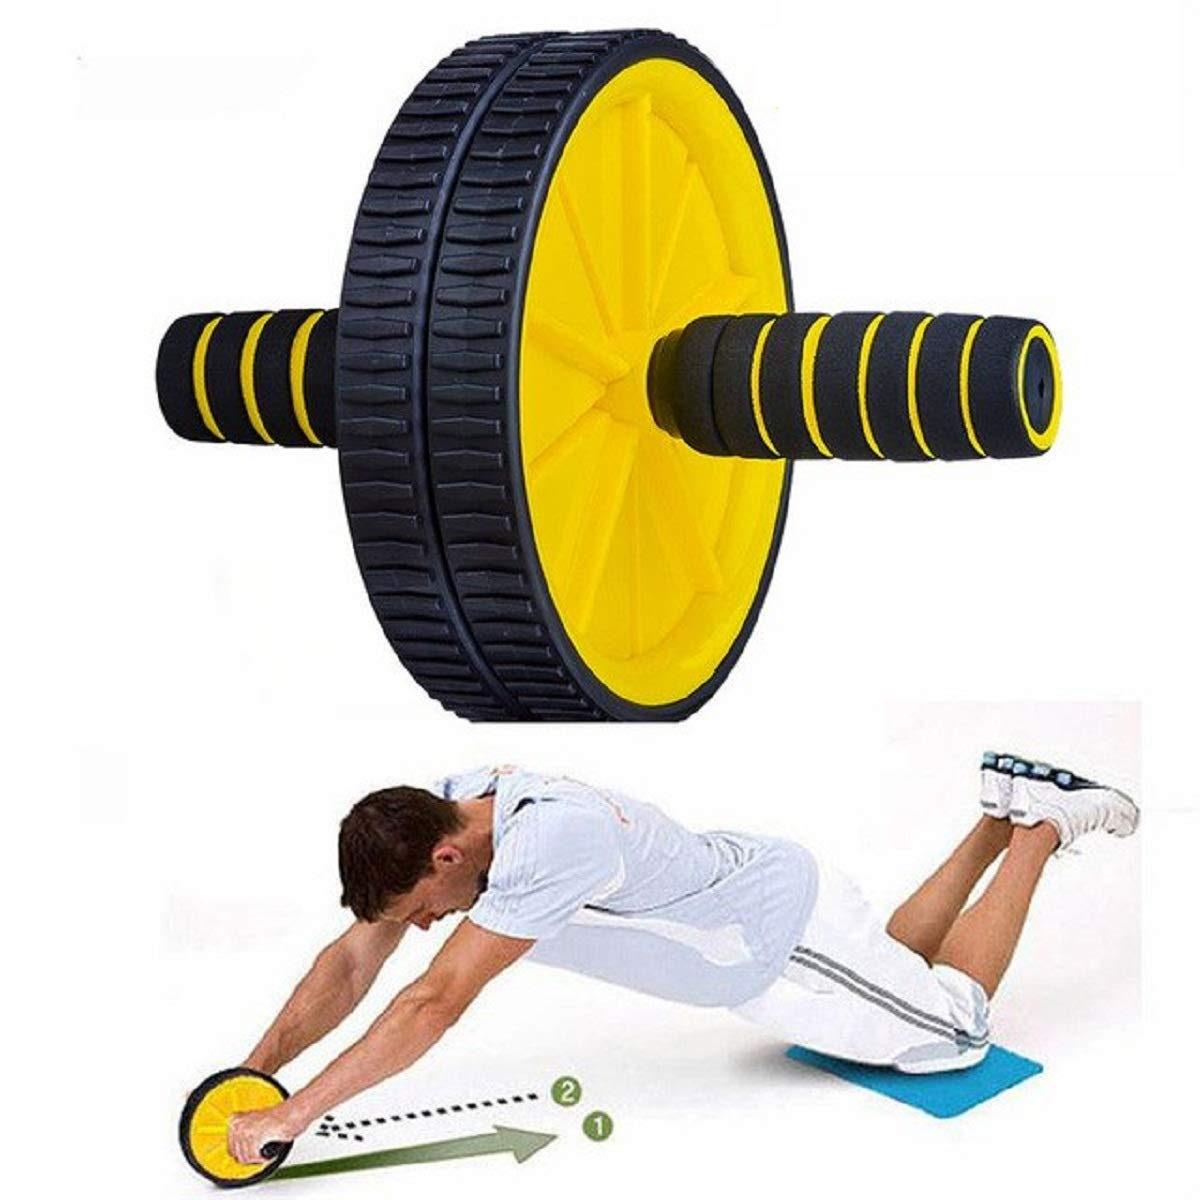 Buy Sidhmart Ab Roller Exercise Wheel for Home Gym, Fitness Equipment and  Accessories Online at Low Prices in India - Amazon.in